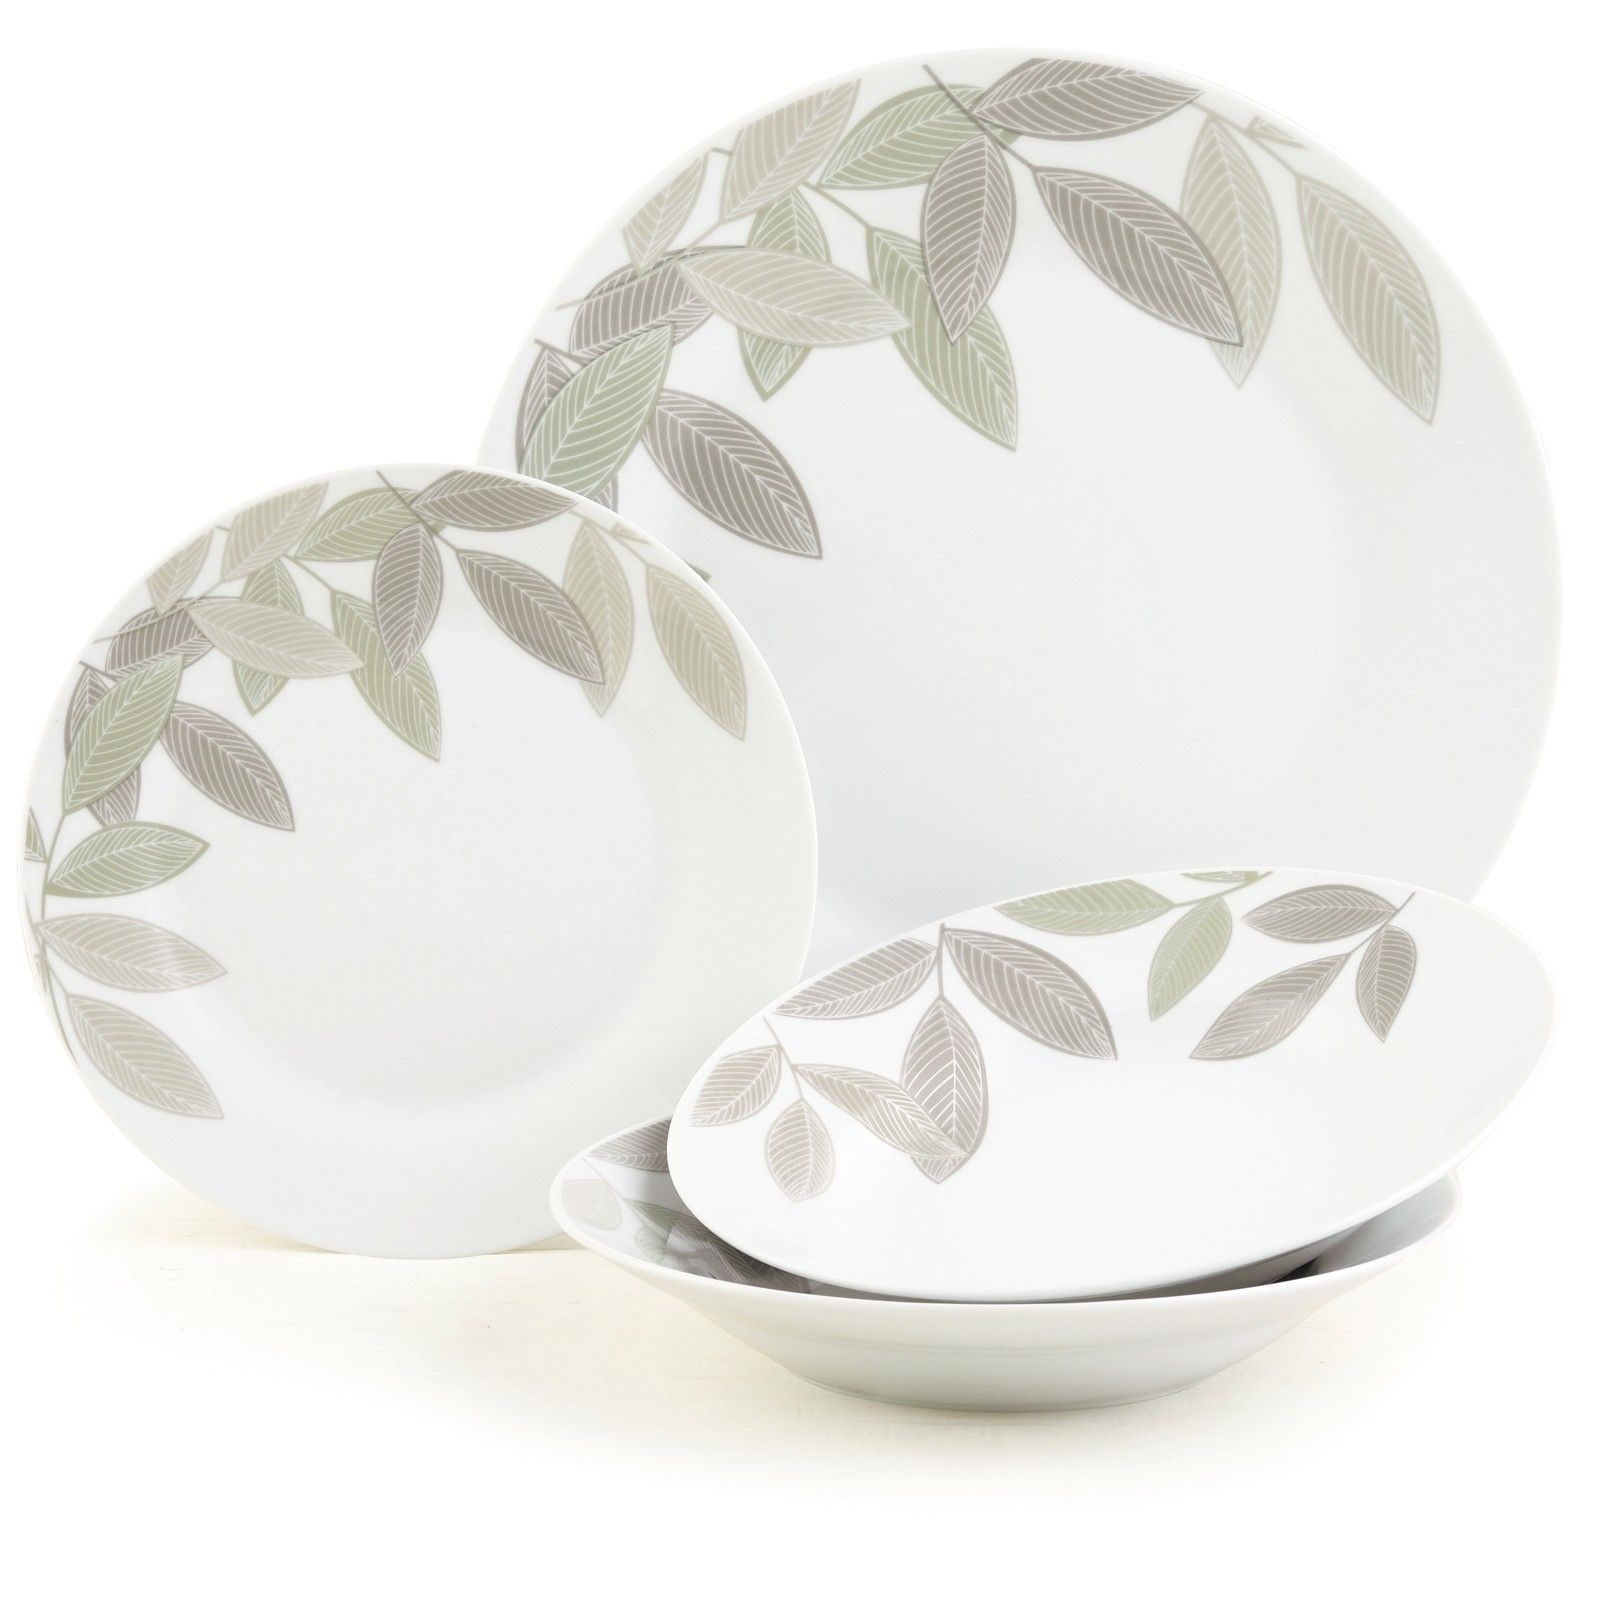 12pc Laurel Leaf Dinner Set NOW £12.96 This is dining made stylish by Sabichi  sc 1 st  Pinterest & 12pc Laurel Leaf Dinner Set NOW £12.96 This is dining made stylish ...